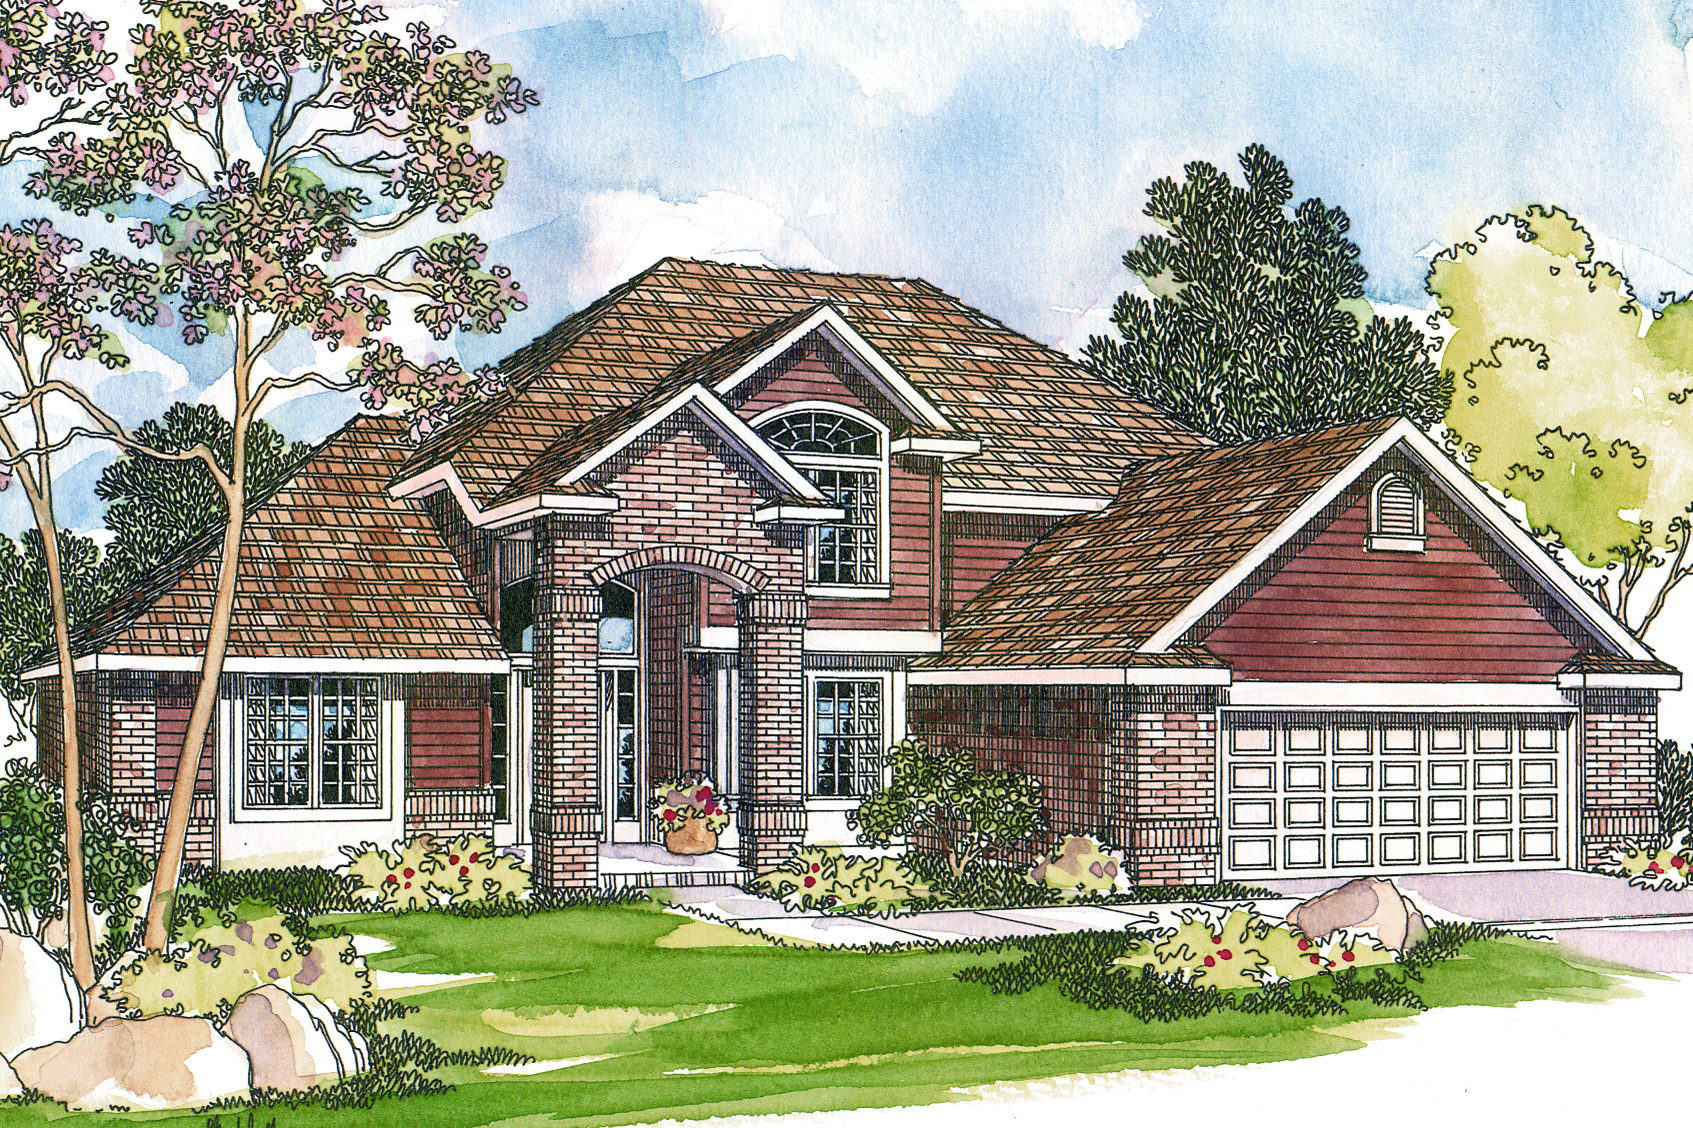 Traditional house plans coleridge 30 251 associated for House plan design ideas